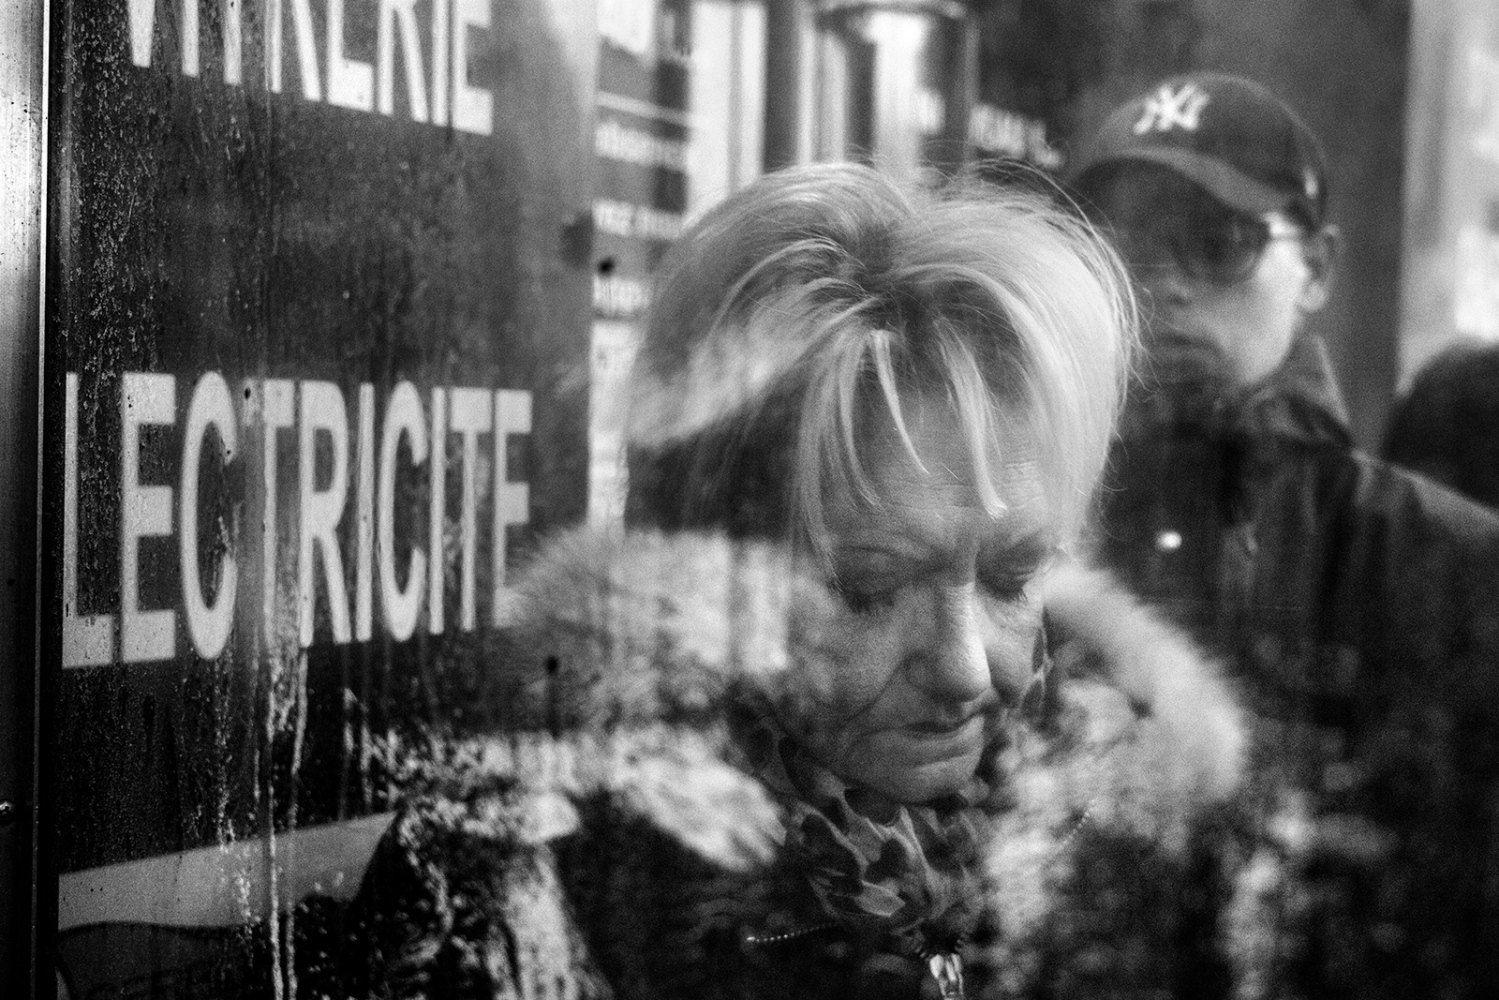 An old woman prays for the victims of the terrorism attacks. Paris, France. 14/11/2015.The aftermath of the terrorism attacks in Paris on 13.11.2015. At approximately 21:36, two attackers fired shots for several minutes at the outdoor terrace of the restaurant La Belle …quipe on the Rue de Charonne in the 11th arrondissement before returning to their car and driving away. Nineteen people were killed and nine were left in a critical condition.